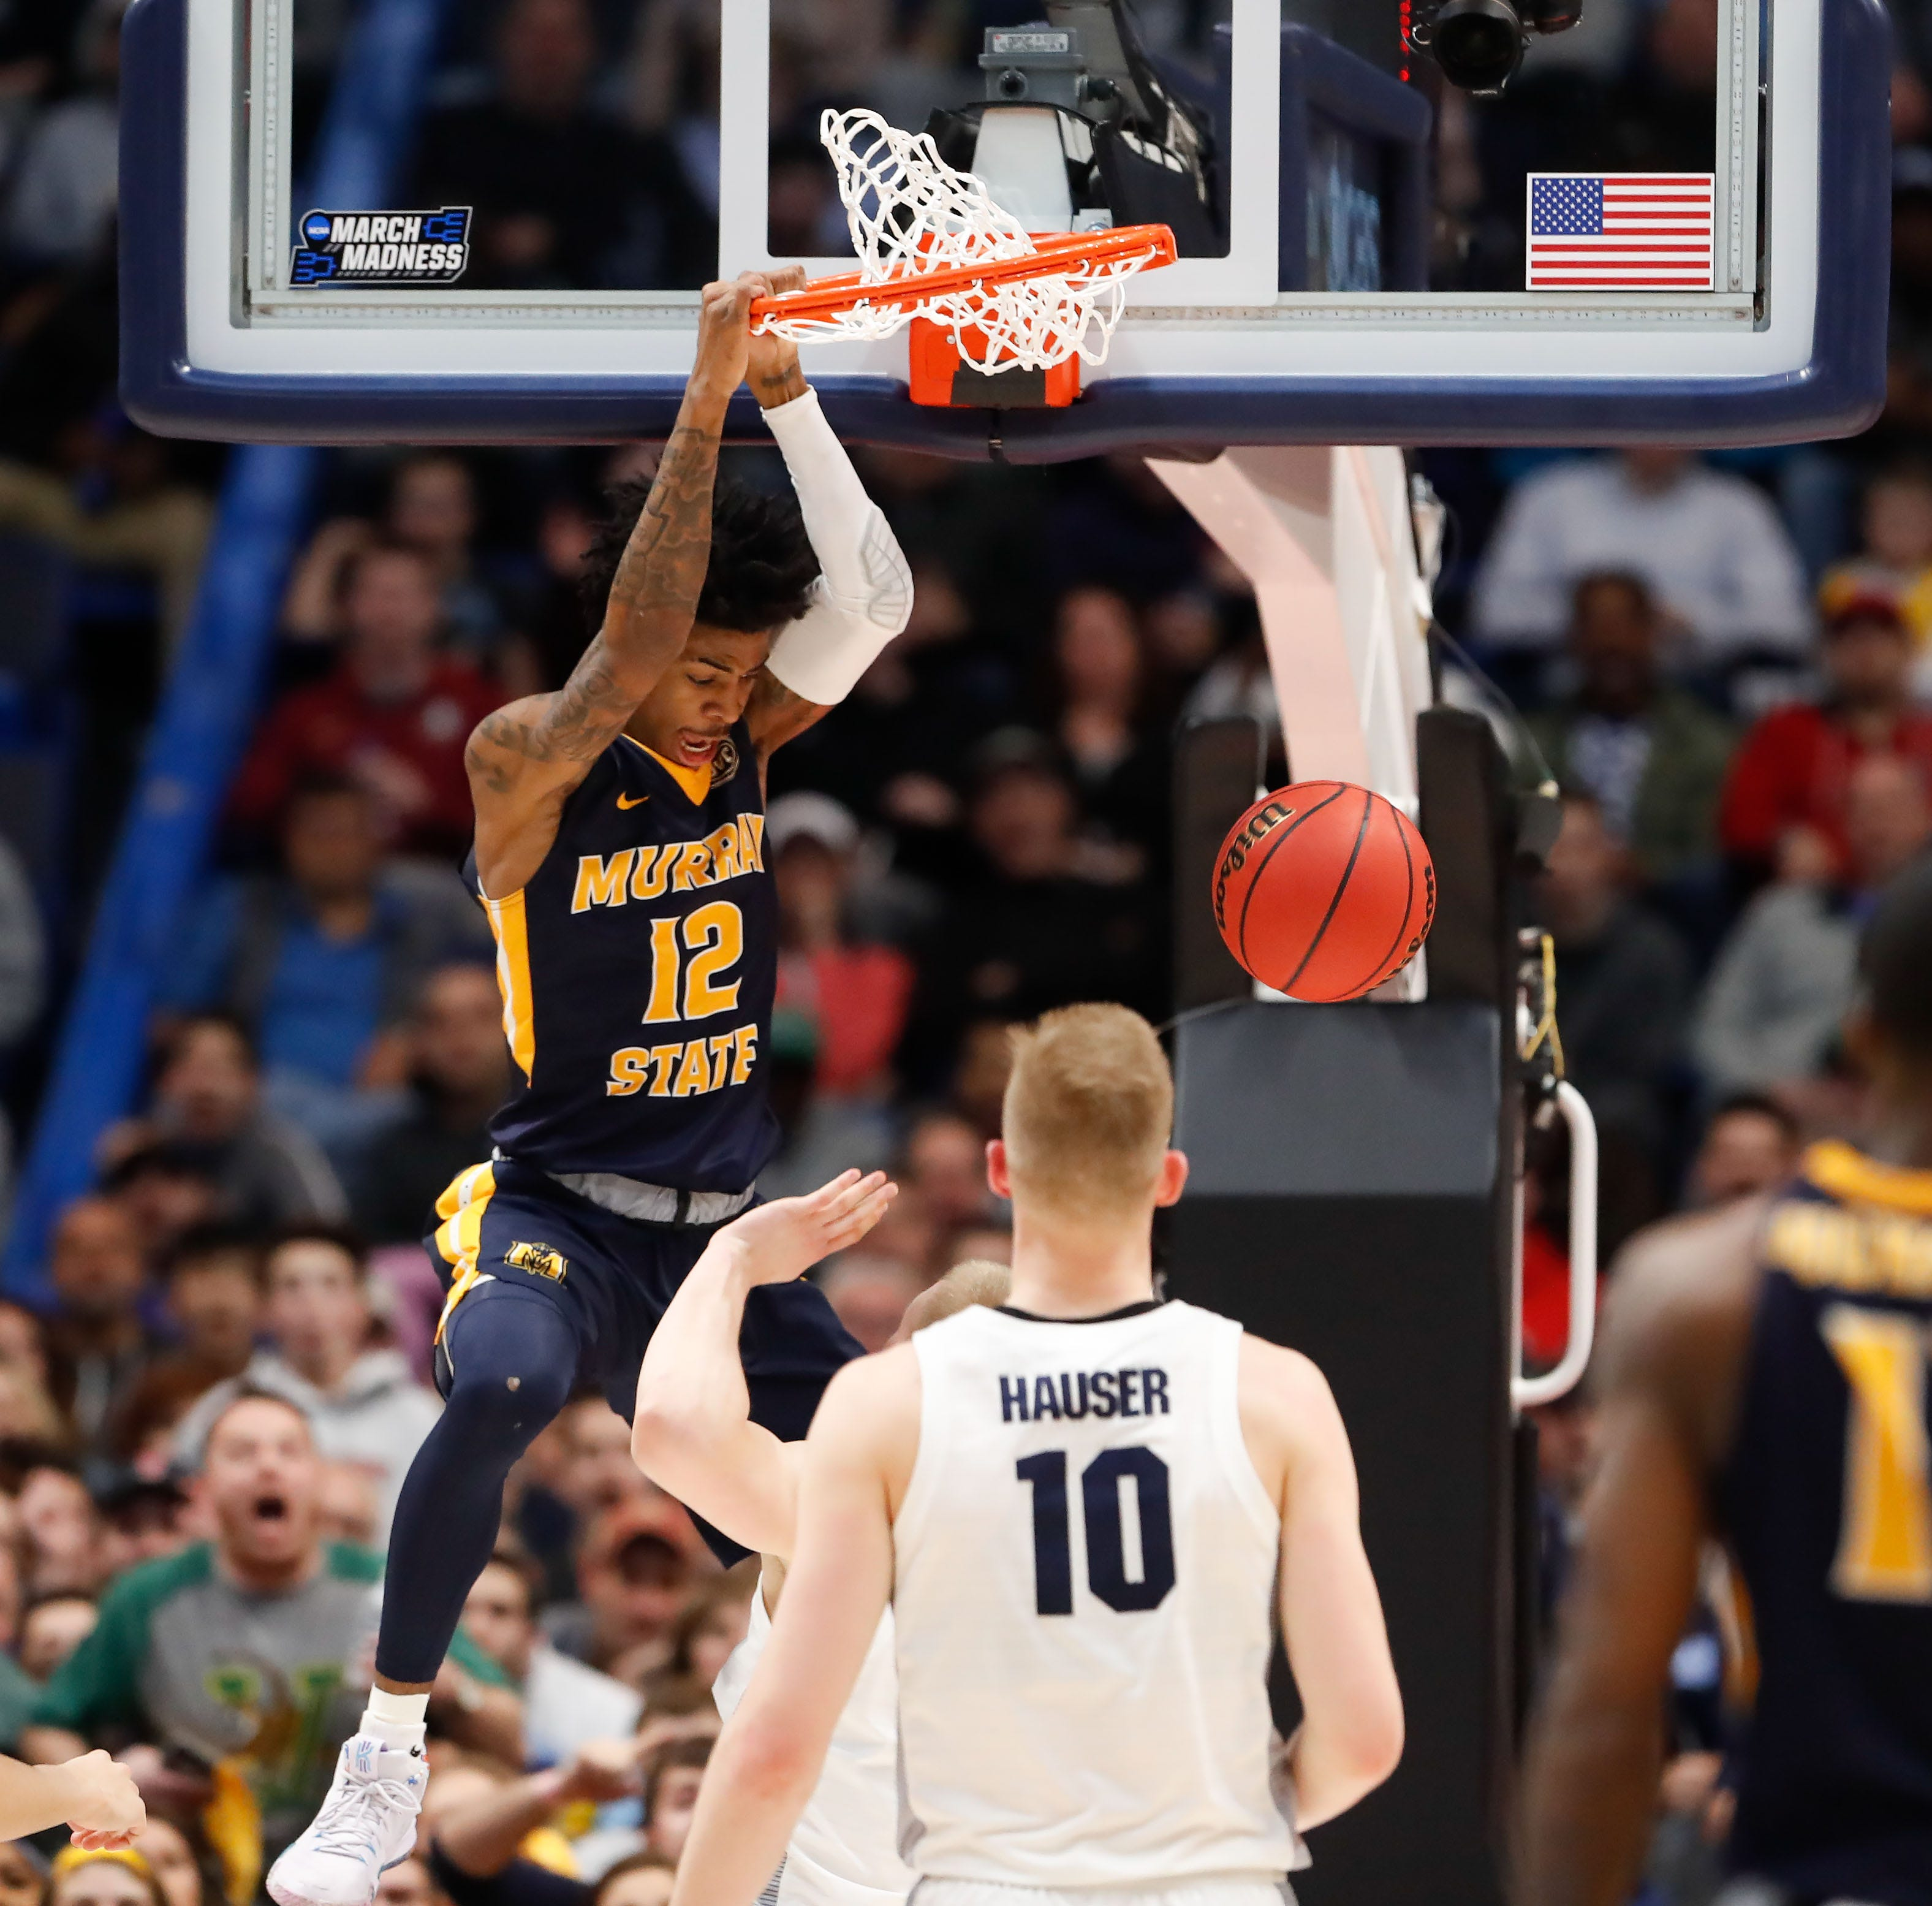 Doyel: Zion Williamson a lock for No. 1 NBA draft pick? Ja Morant may have something to say about that